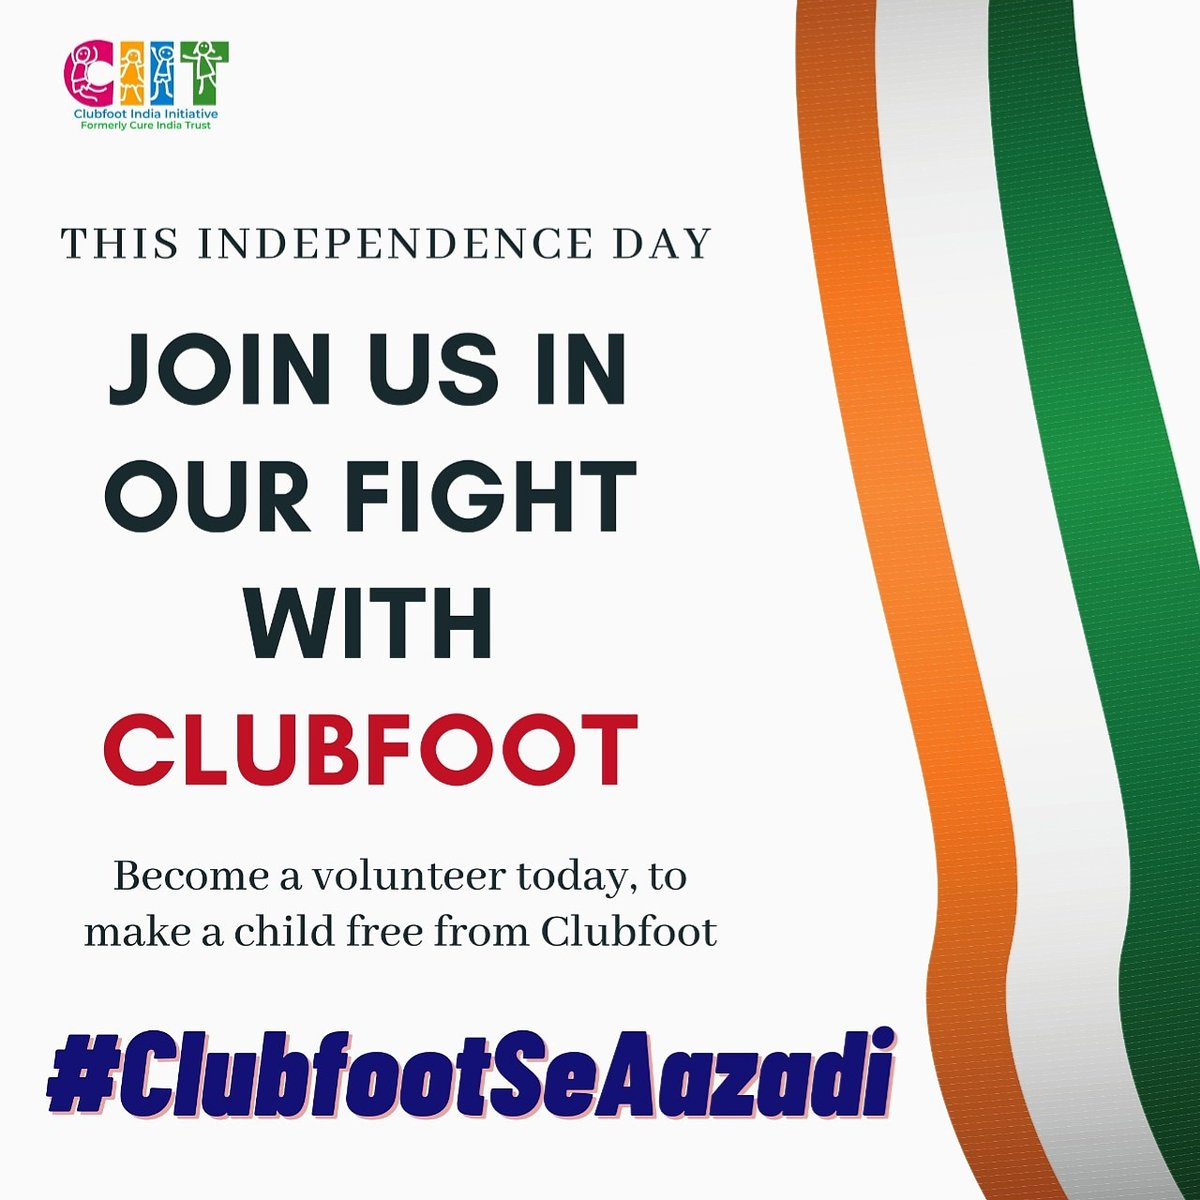 With over 150 children being born with Clubfoot in India every day. Help us defeat this disability & give India #ClubfootSeAazadi Join us at CIIT https://clubfootindia.in/get-involved/ Or donate https://clubfootindia.in/donate/  #clubfootindia #IndependenceDay #IndependenceDay2020pic.twitter.com/imZKxApReO